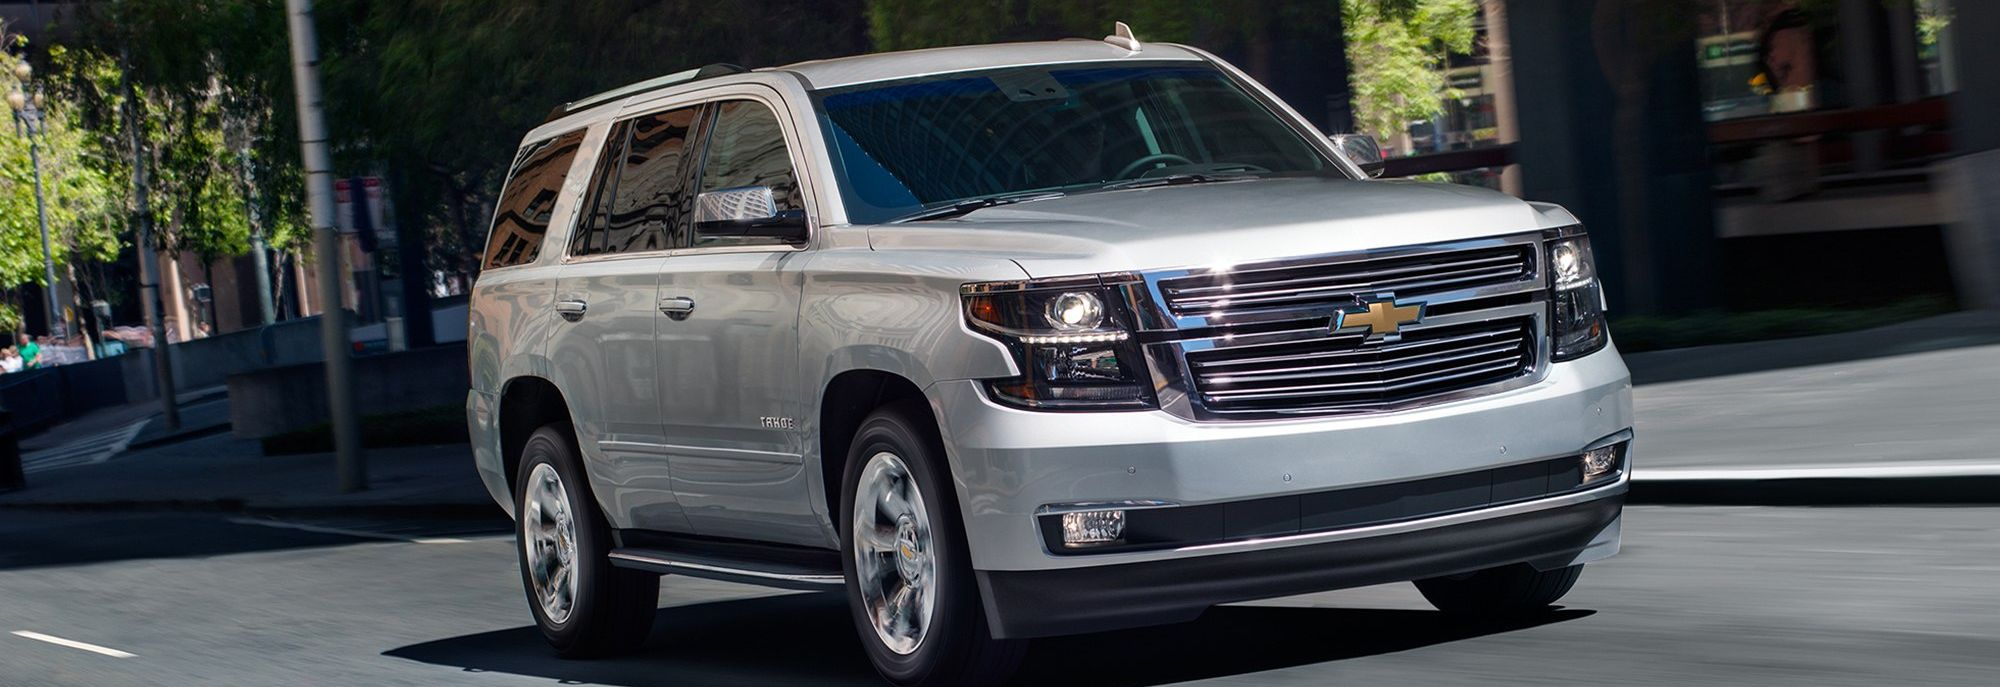 2019 Chevrolet Tahoe for Sale near Merrillville, IN